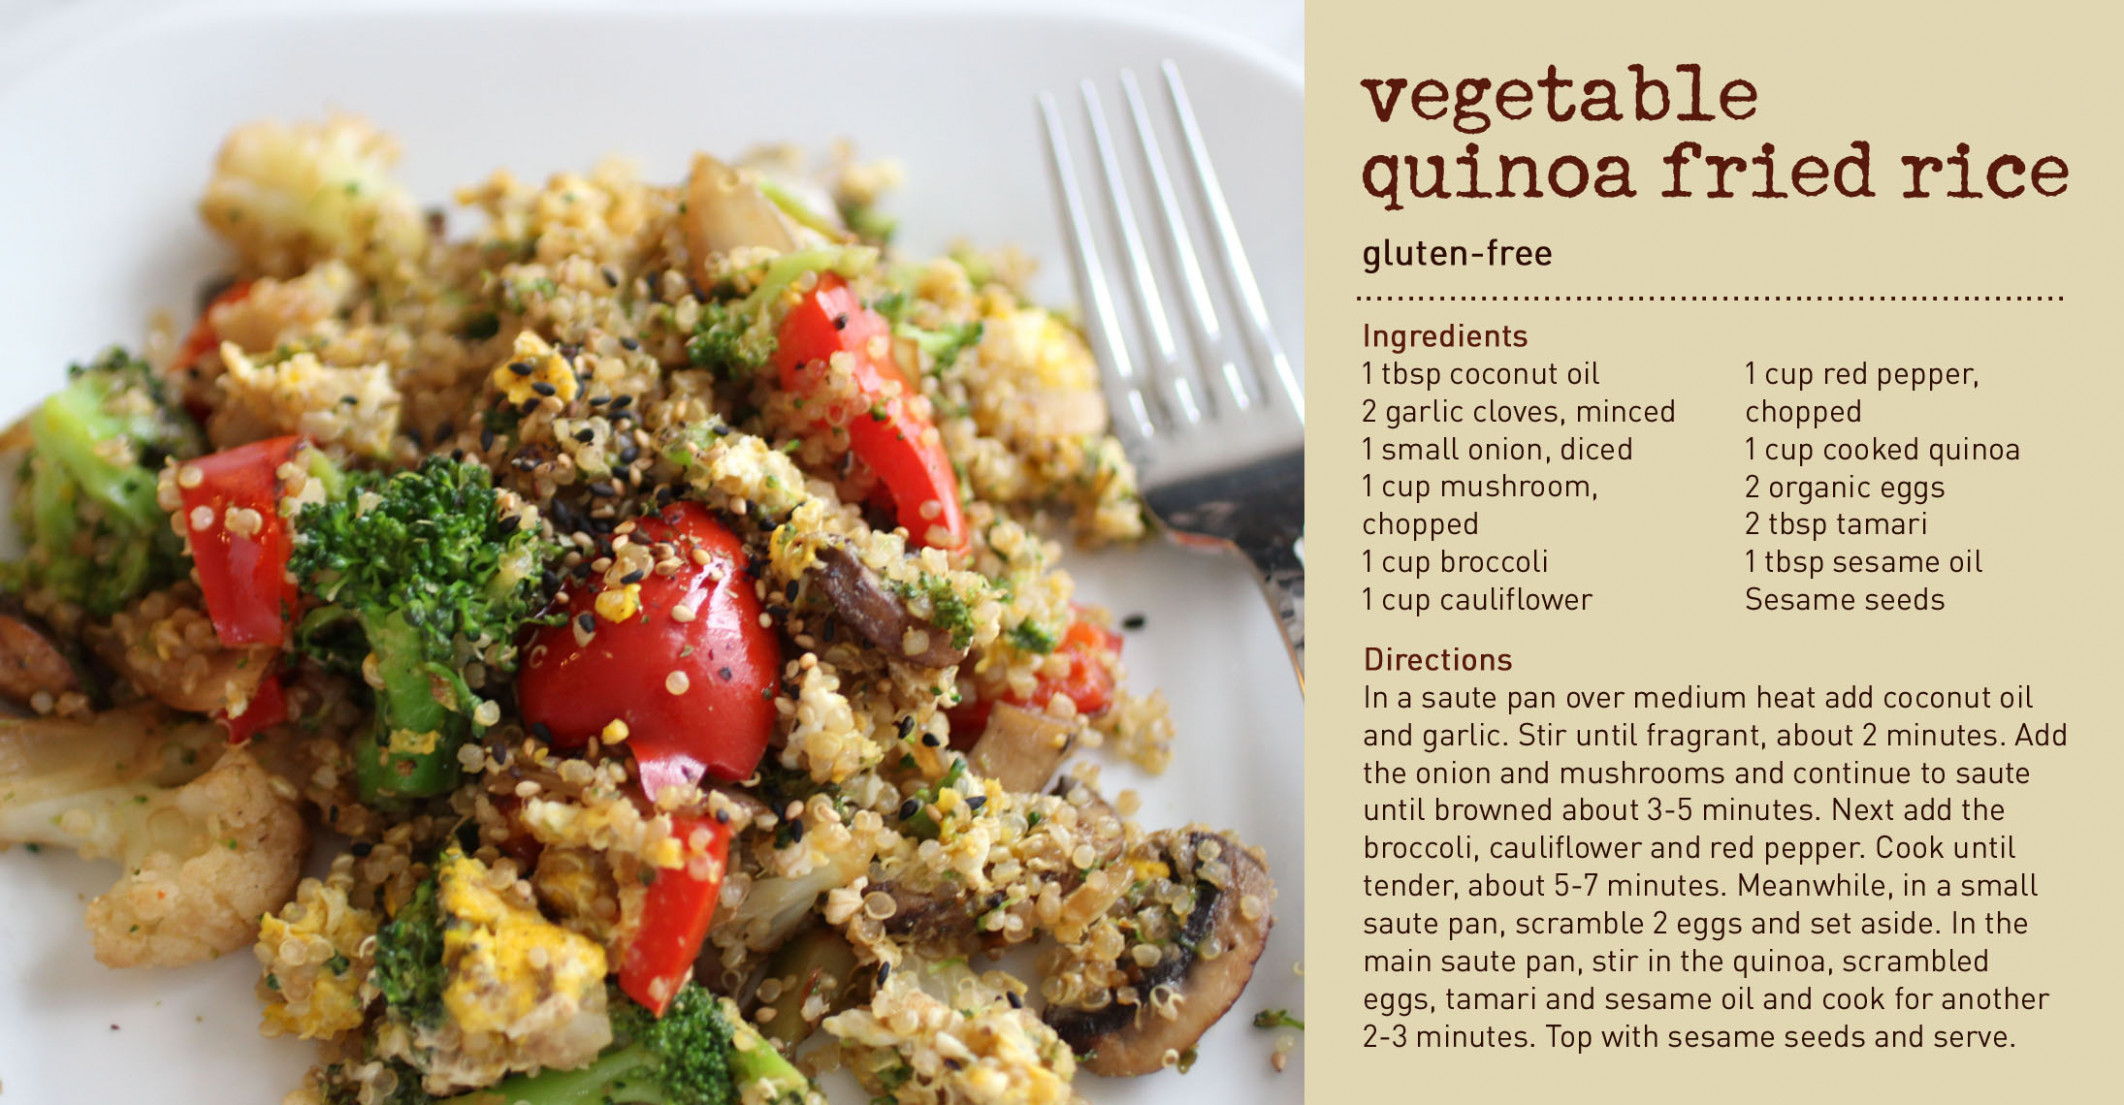 11 Healthy Quinoa Recipes | eat purely. live purely